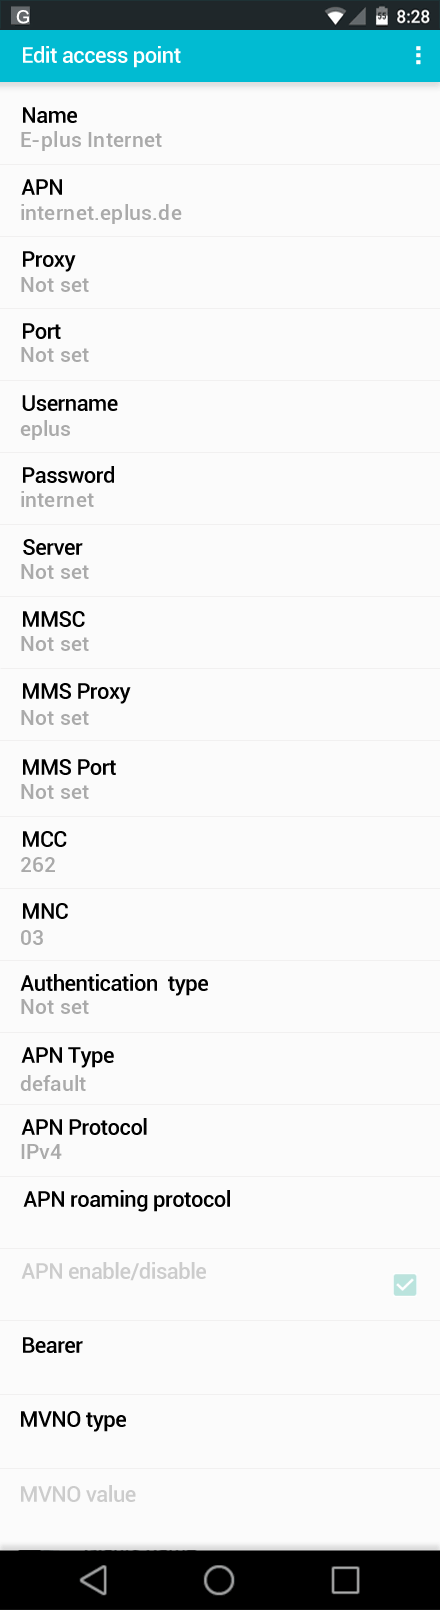 E-plus Internet APN settings for Android screenshot